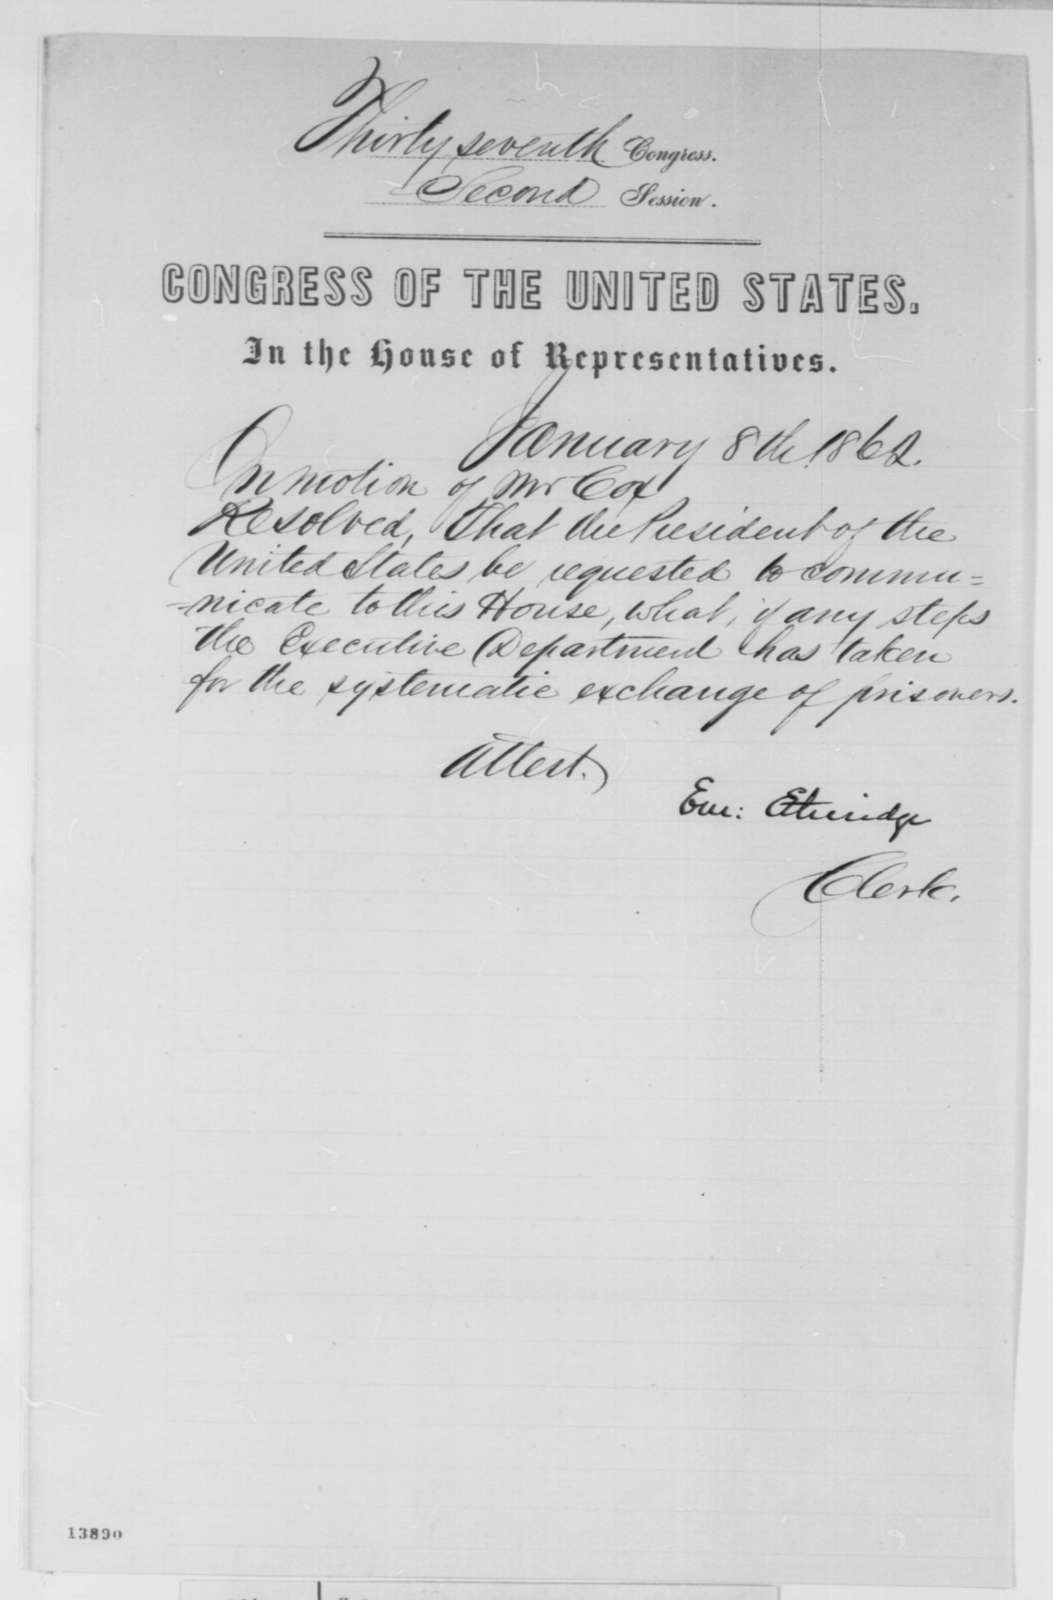 House of Representatives, Wednesday, January 08, 1862  (Resolution)